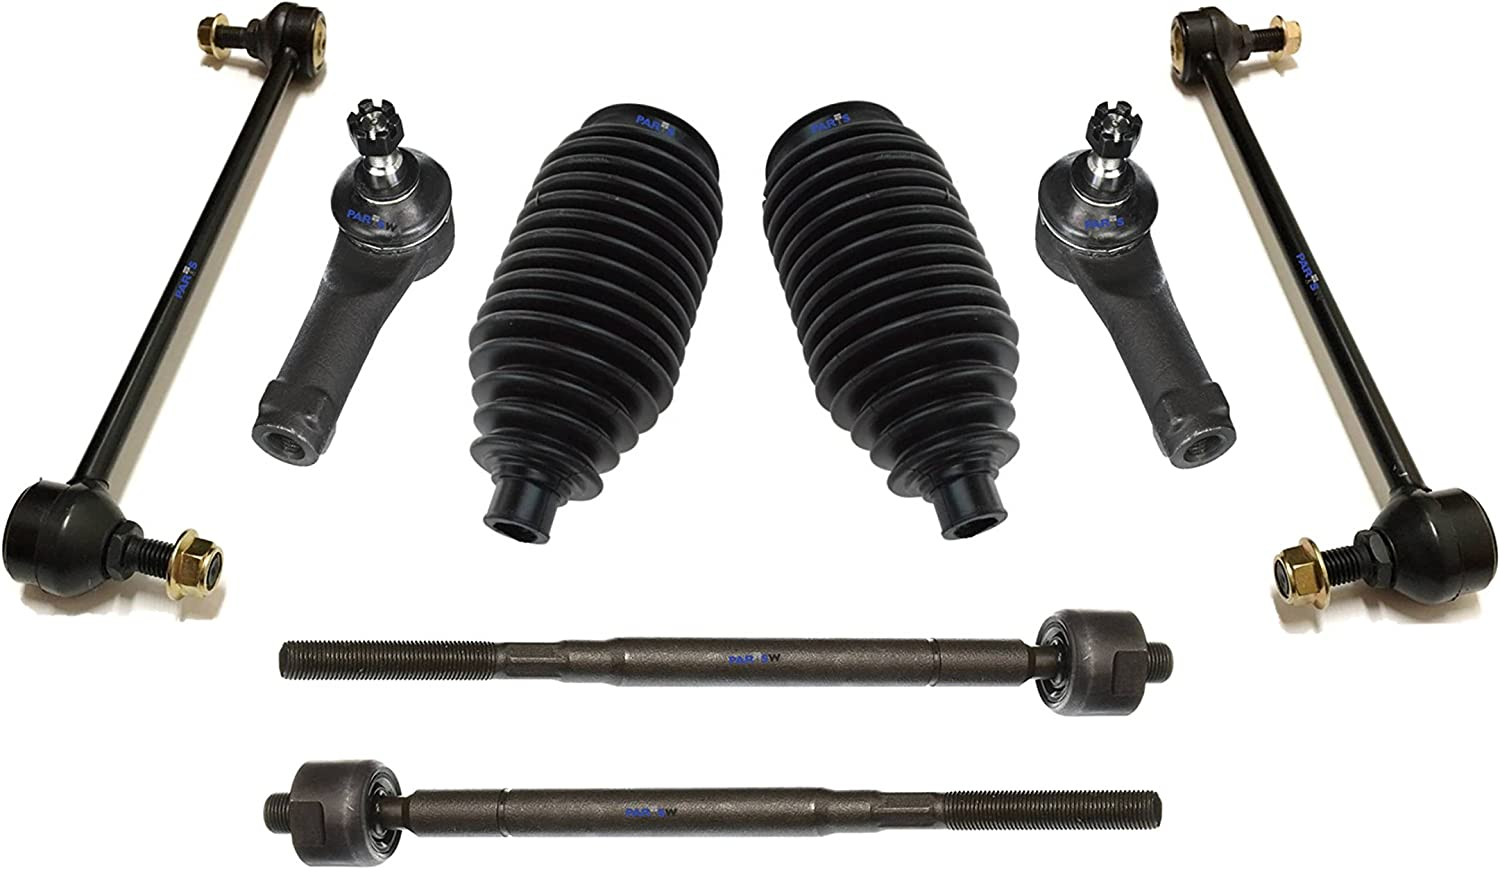 Lower Control Arms Rack /& Pinion Bellow Boot PartsW 10 Pc Suspension Kit For Honda Odyssey 2002-2004 Tie Rod Ends /& Sway Bars